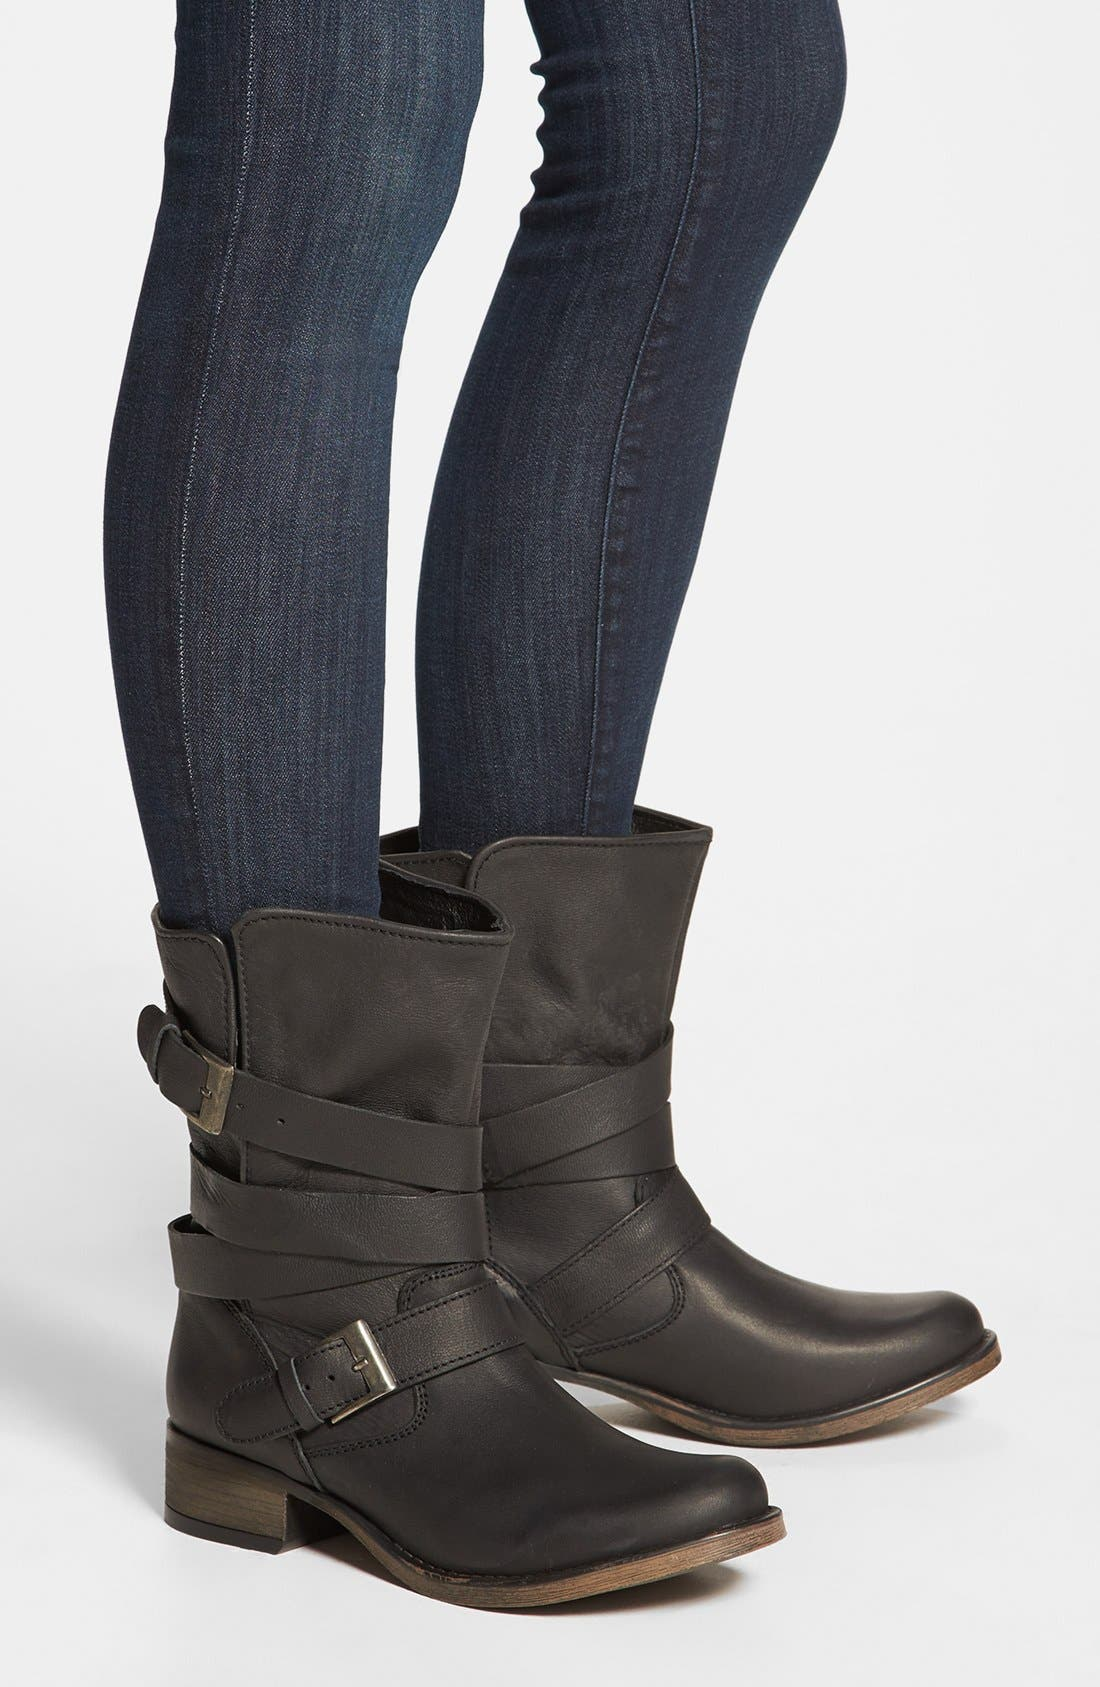 STEVE MADDEN, 'Brewzzer' Boot, Alternate thumbnail 6, color, 001